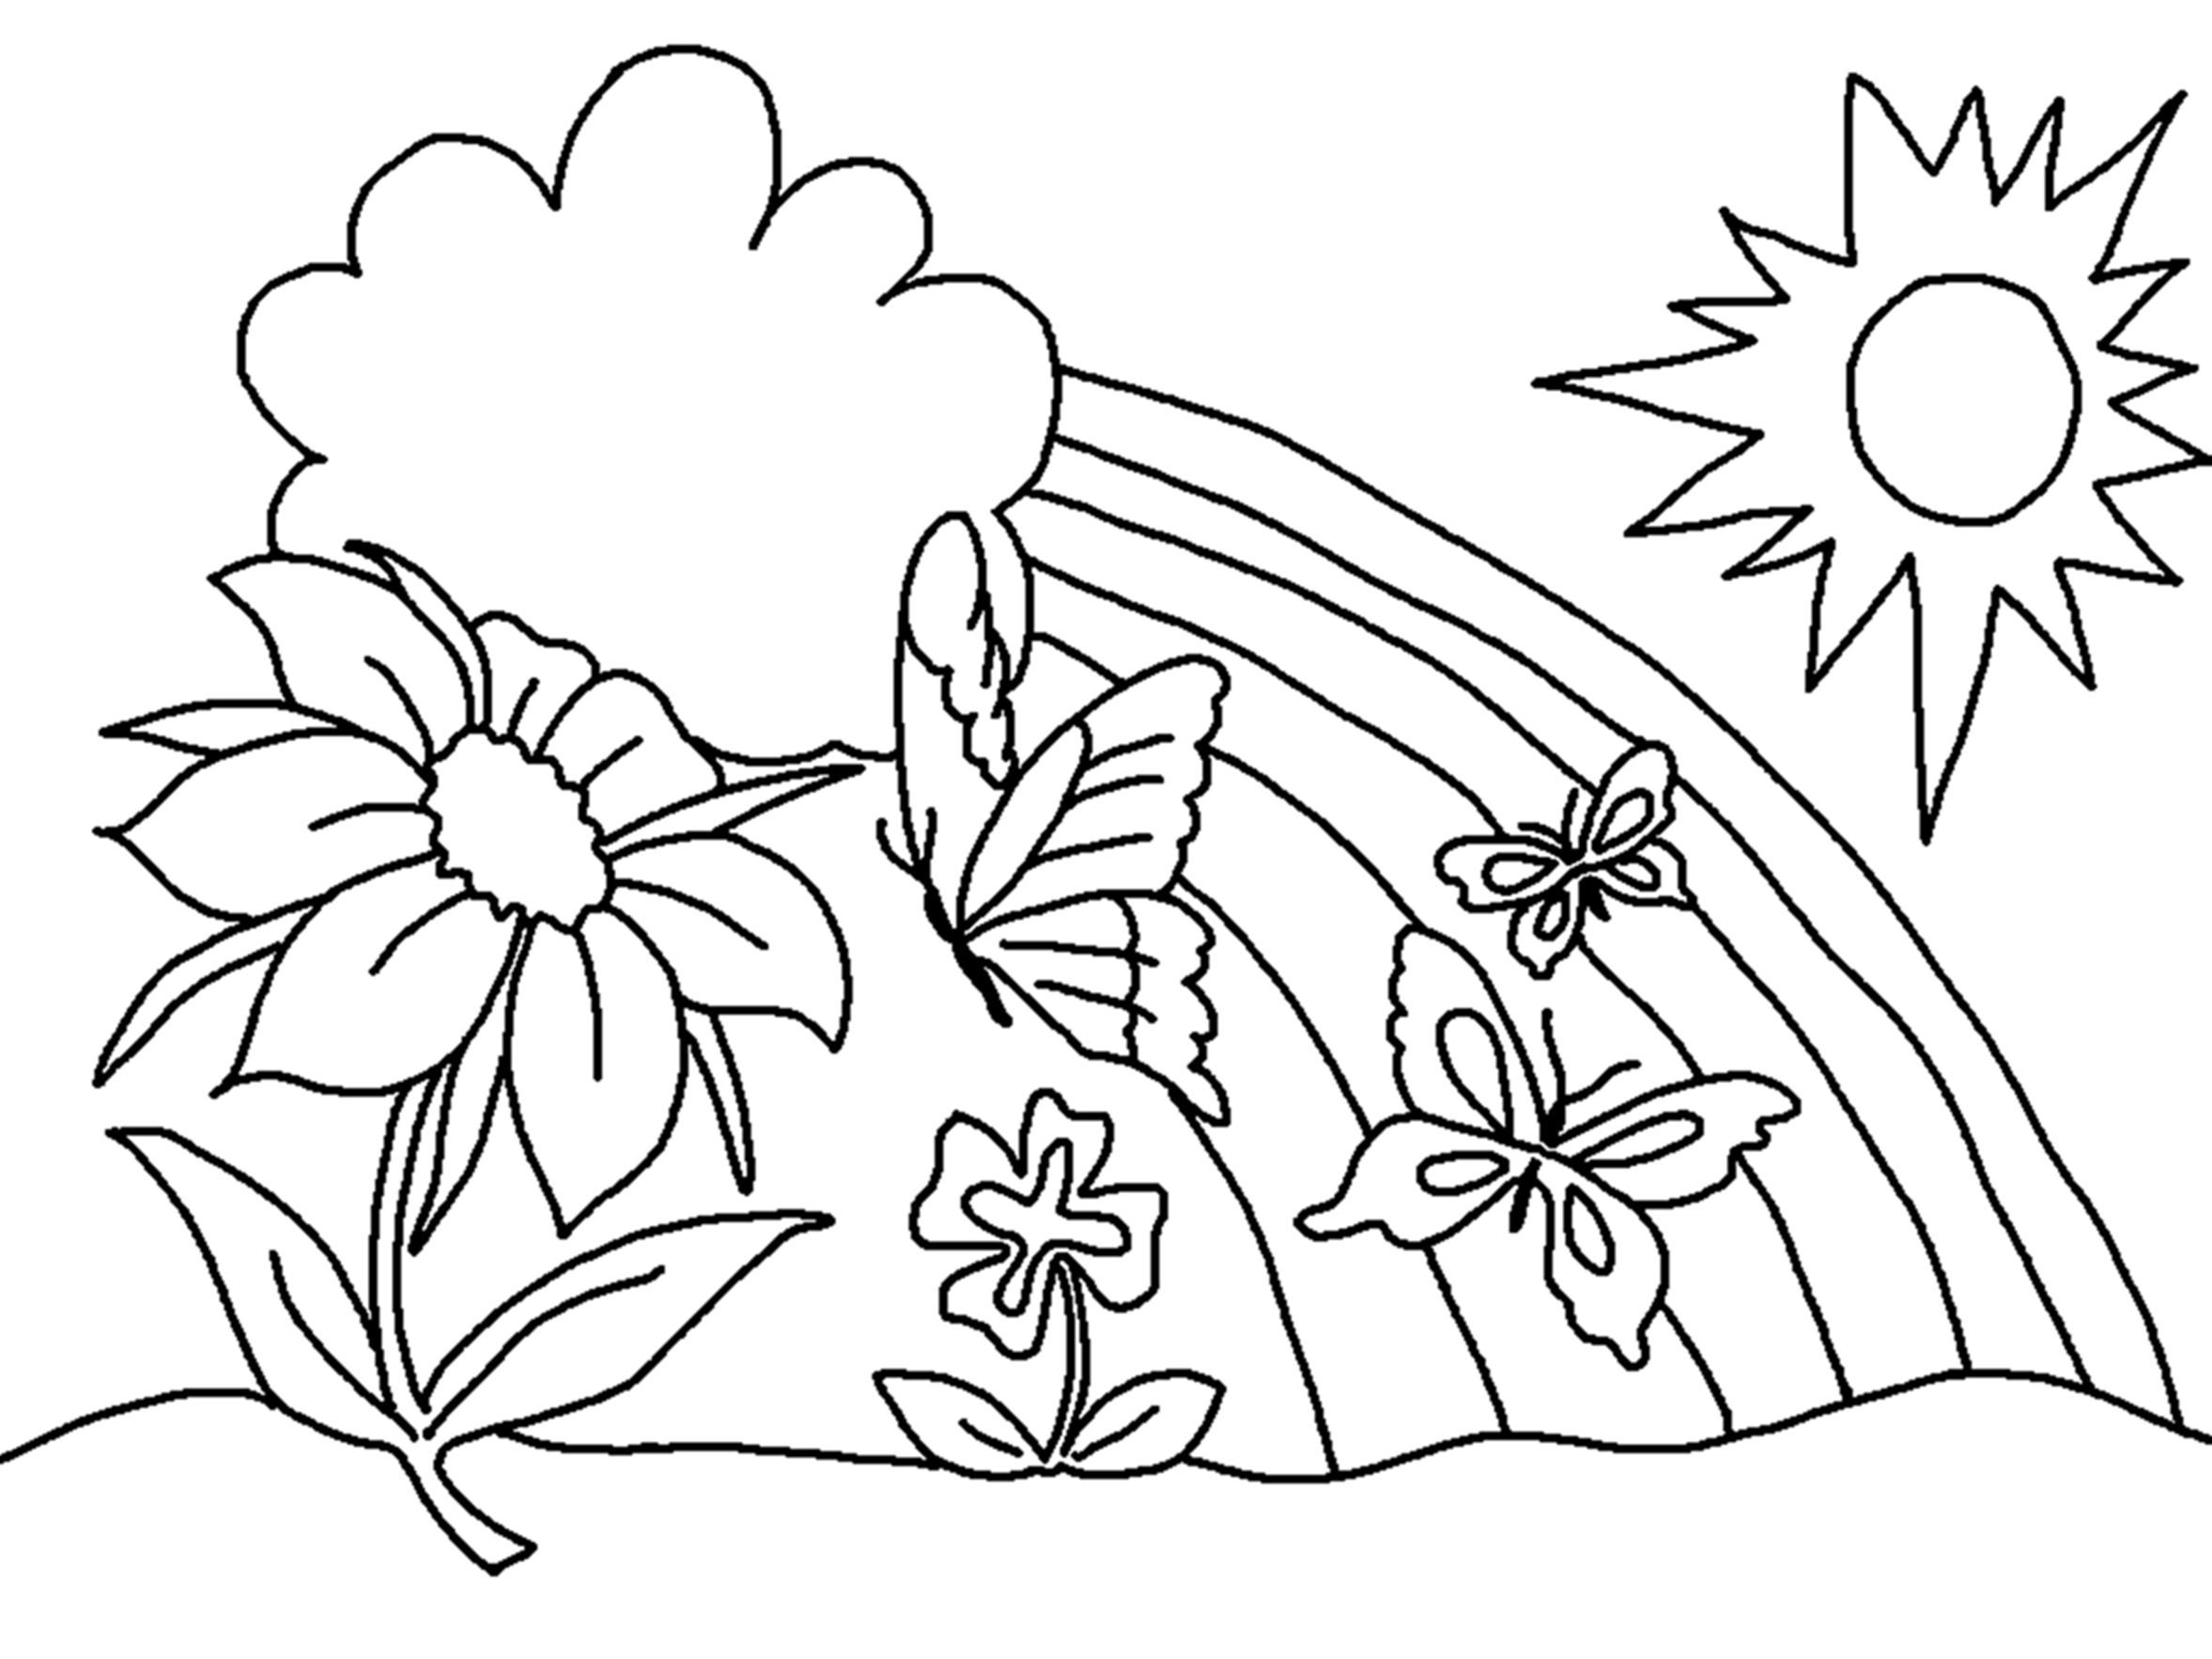 children planting flowers coloring pages - photo#31